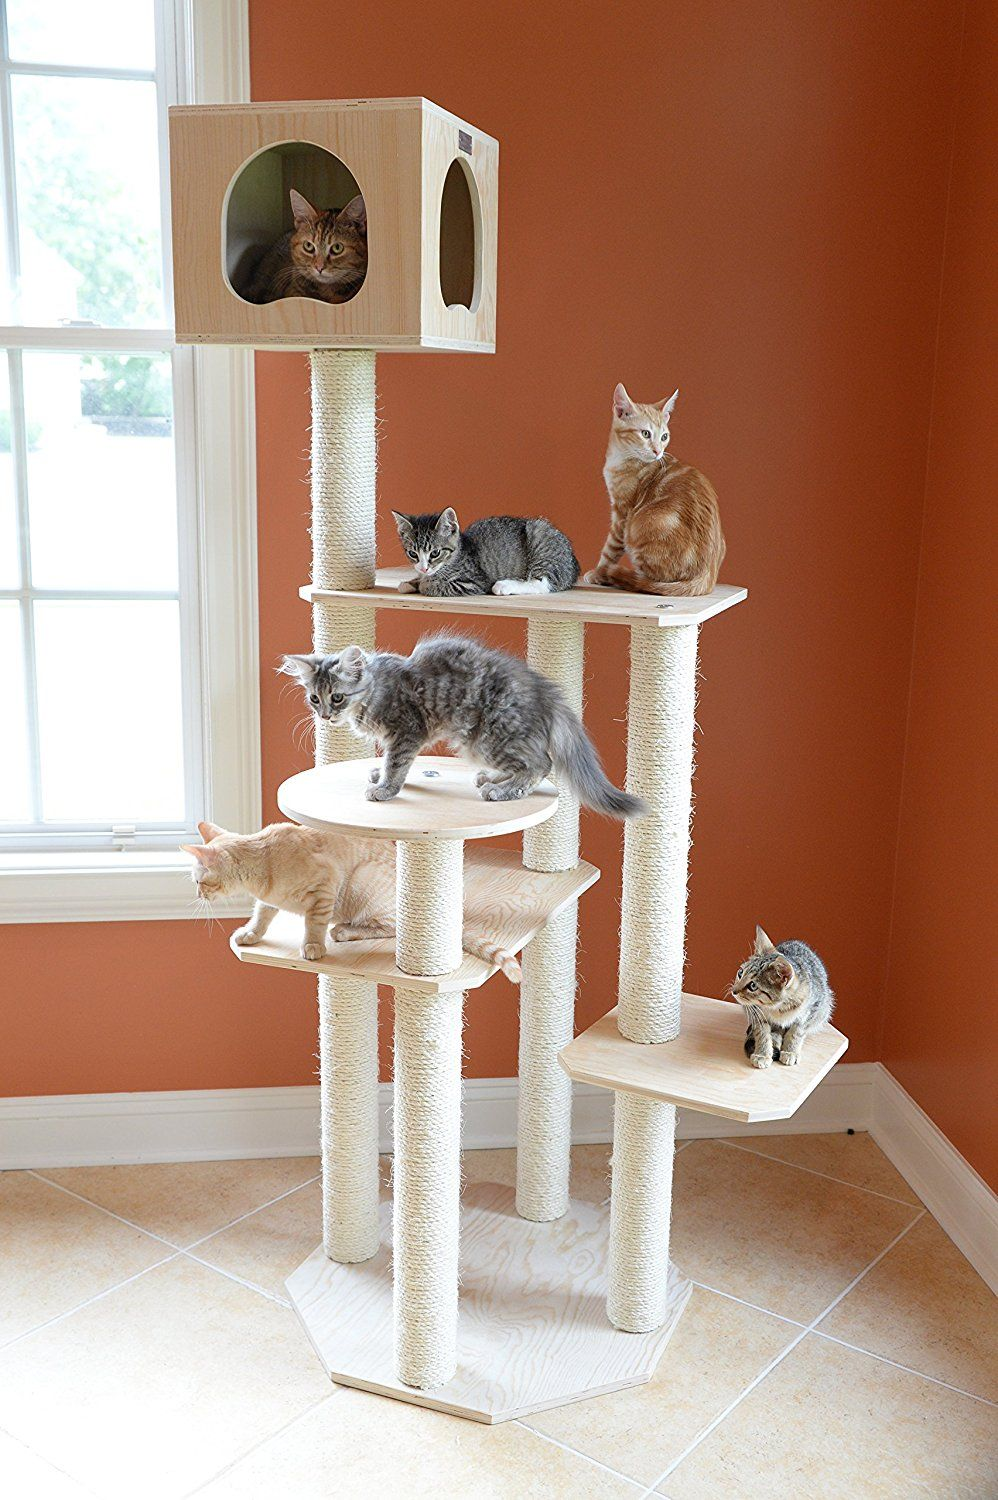 Cool Cat Stuff ♥ Hereu0027s A A Really Cool Cat Tree Without Carpet. Lots Of  Sisal Scratching Posts, Platforms And Cubbies For Snoozing.